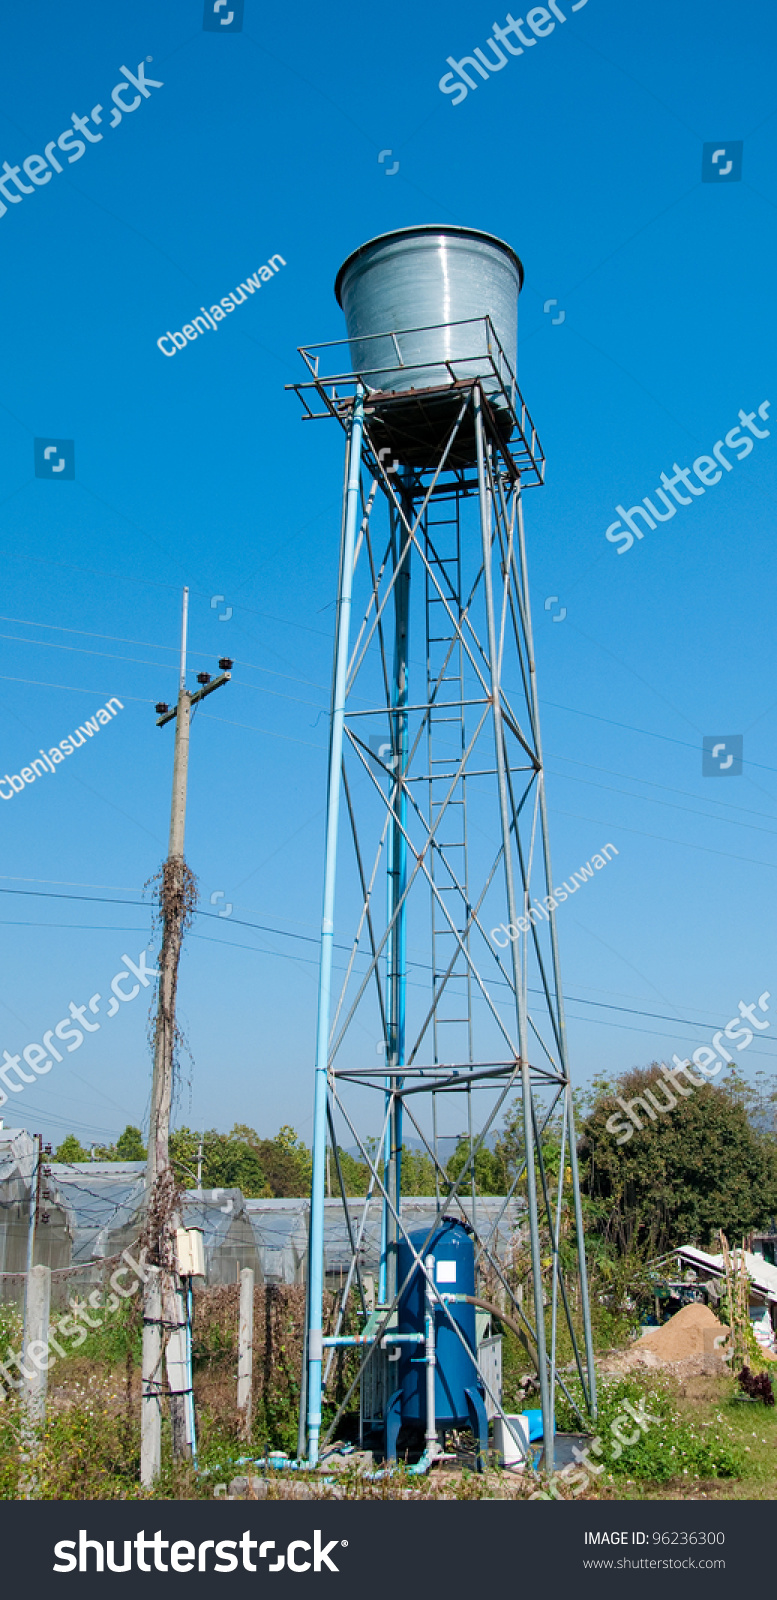 The tower of water tank in farm stock photo 96236300 for Farmhouse tower